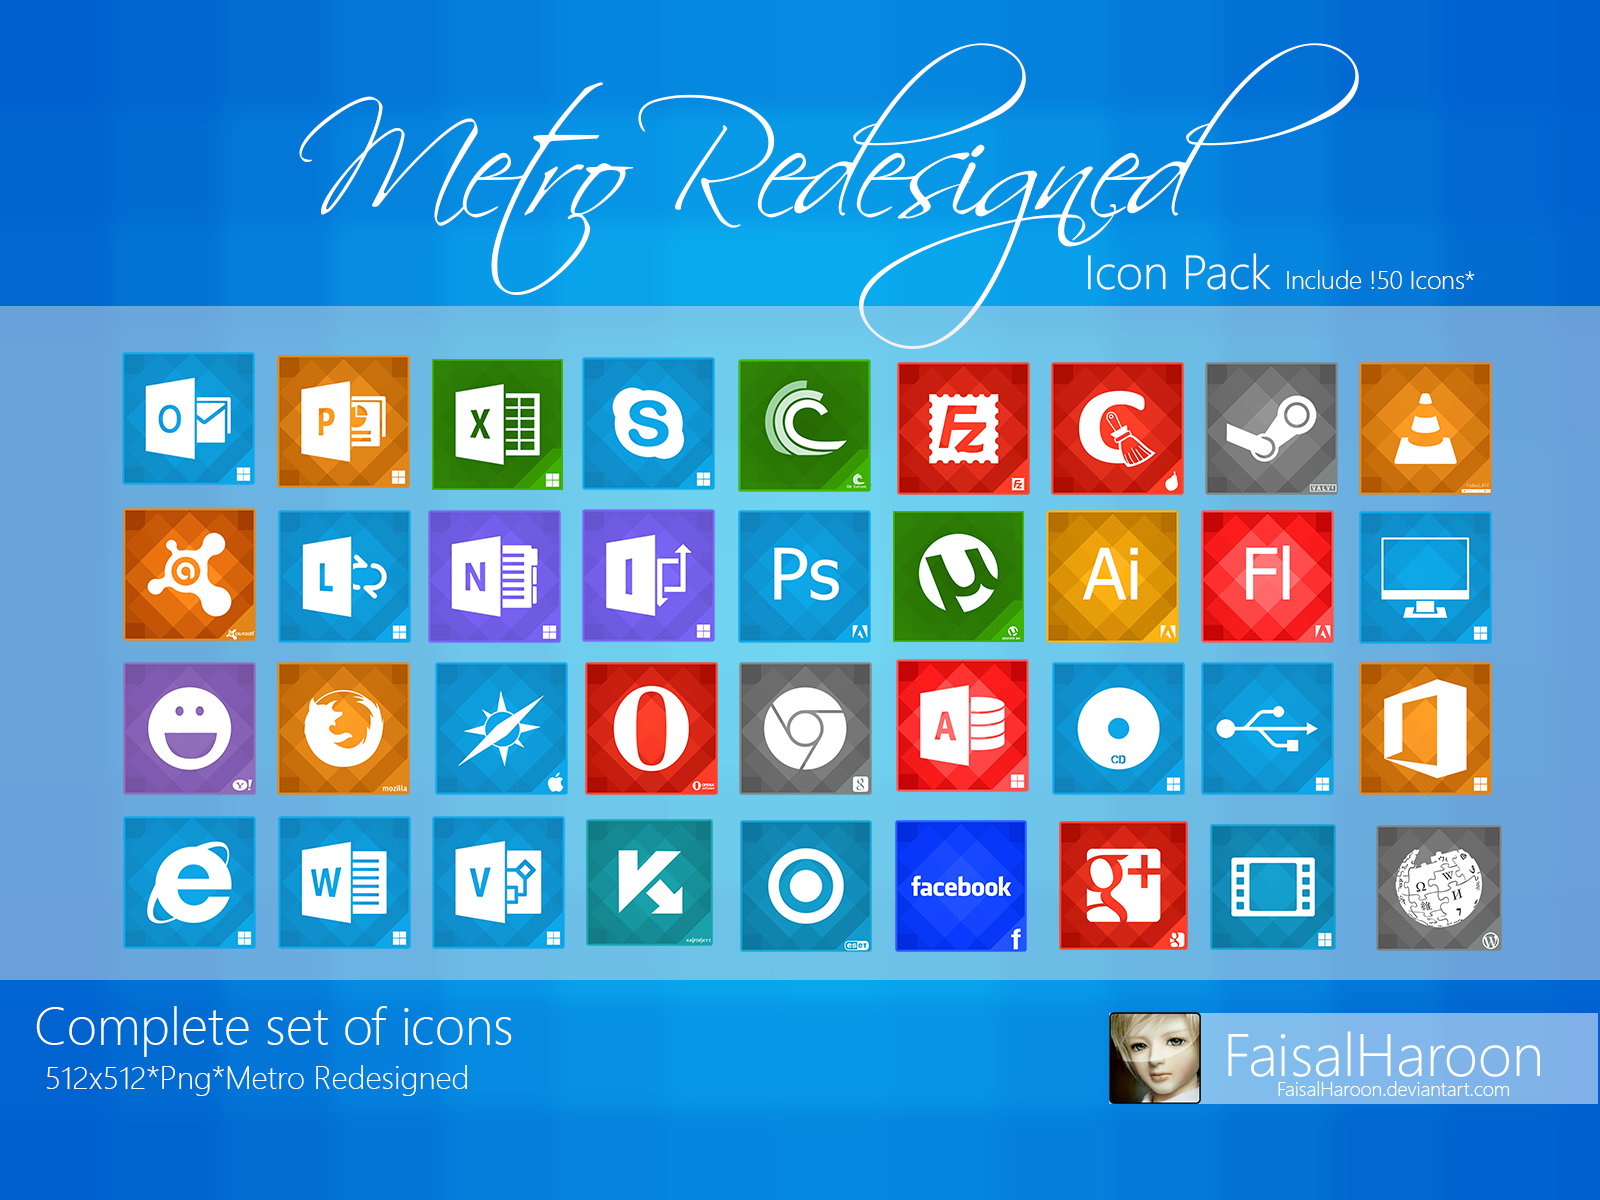 Windows 8 1 icon pack deviantart | 20 Best Themes for